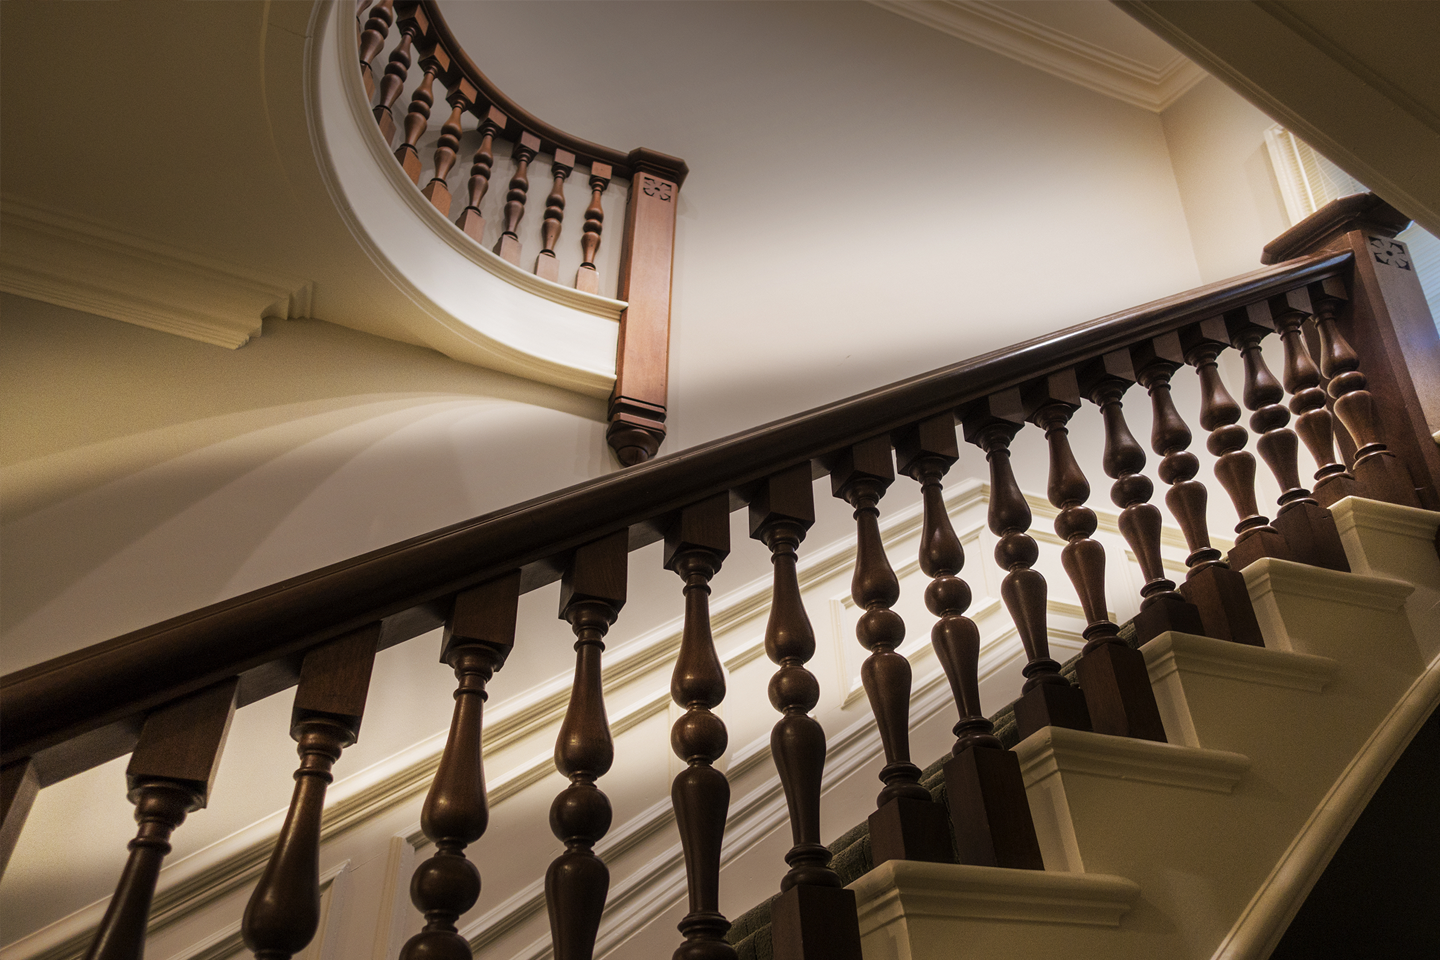 Classical wooden staircase design in mansion